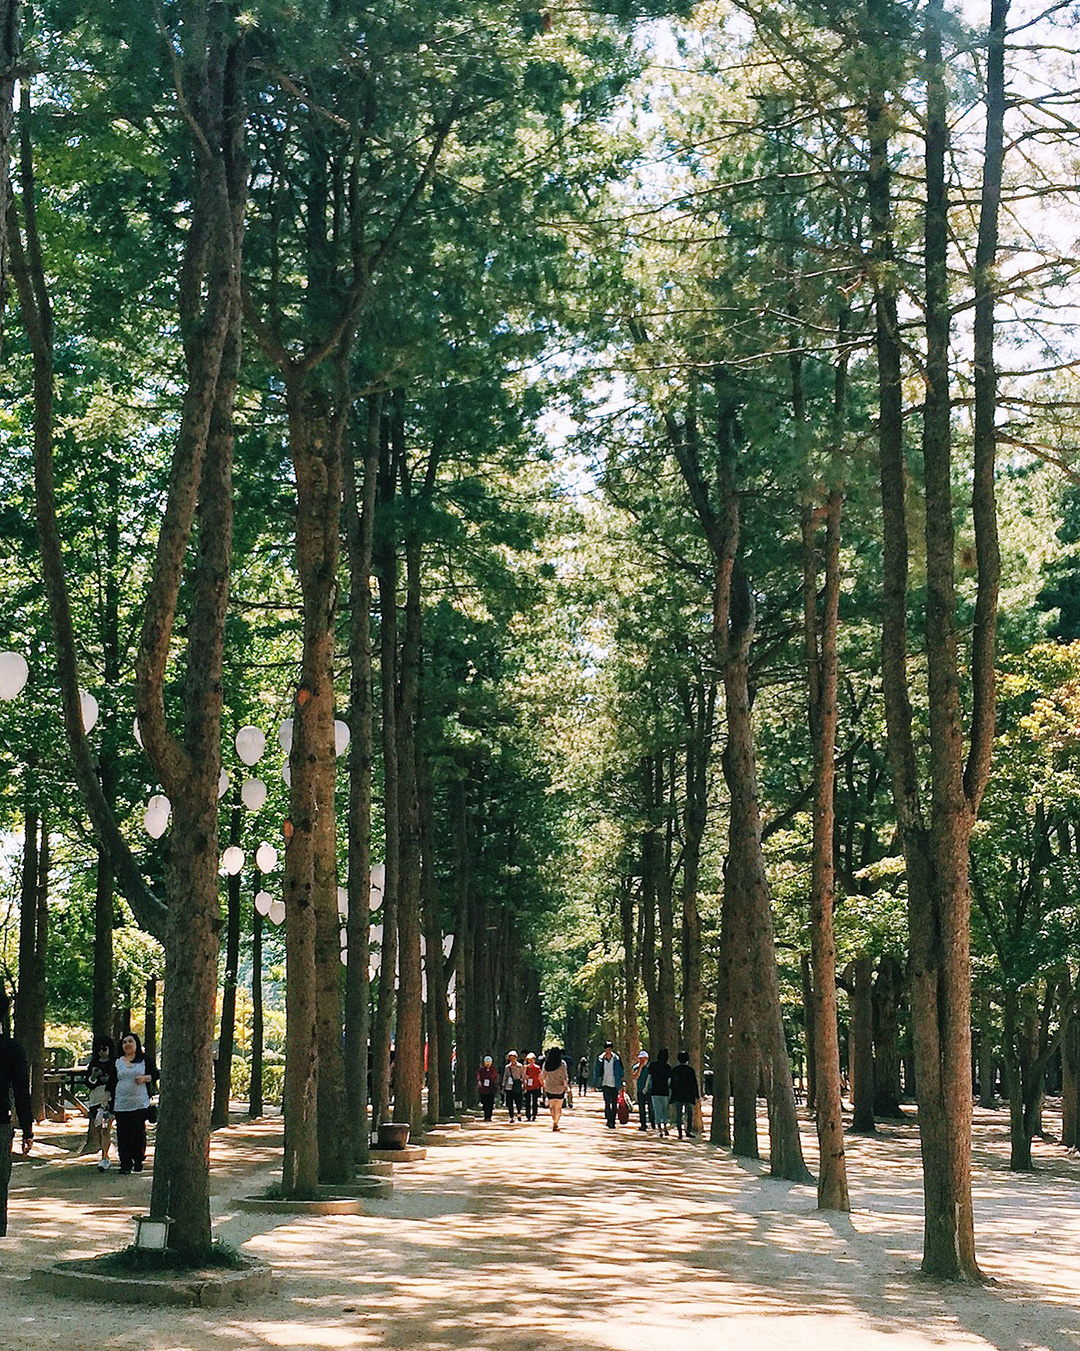 Nami Island is known for their beautiful tree-lined trails. Come here during the fall when the leaves are changing color.